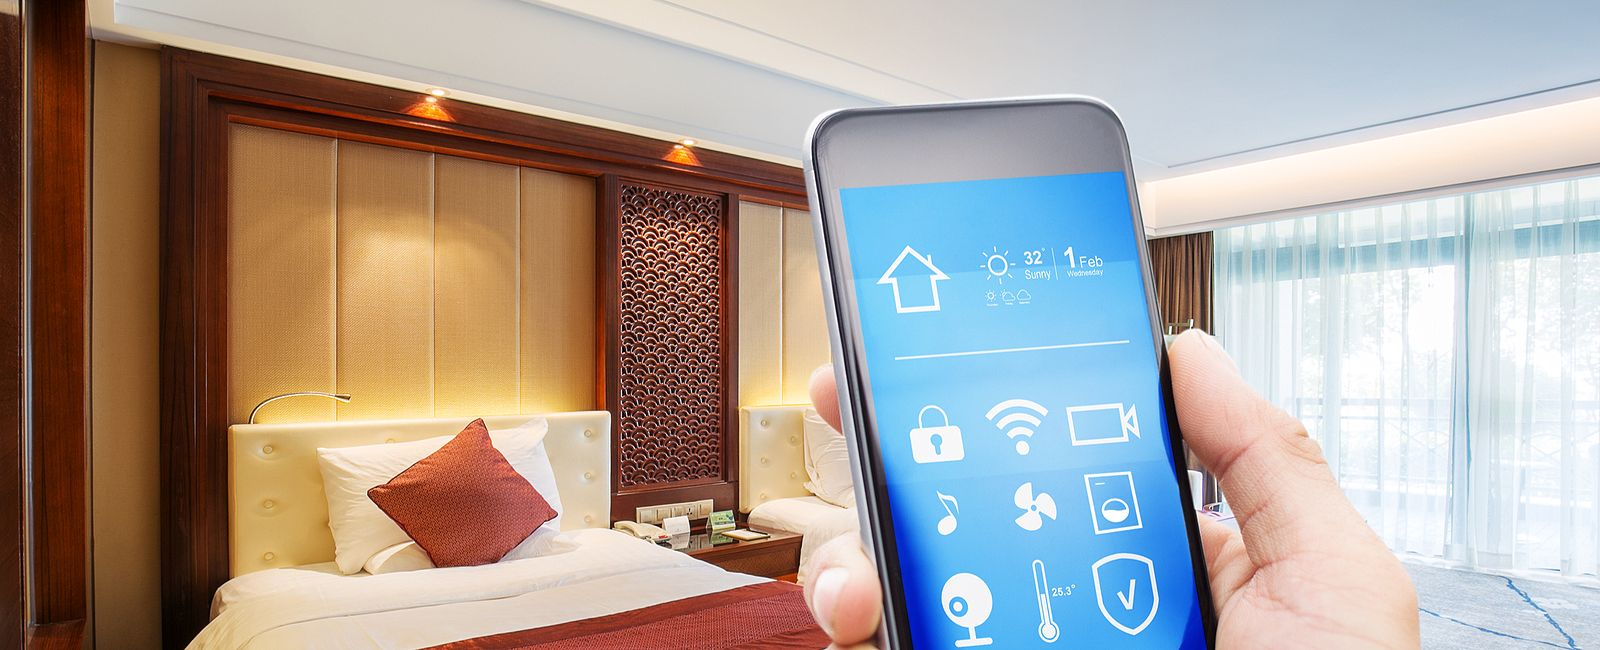 3-benefits-smart-hotels-offer-and-what-it-takes-to-support-them